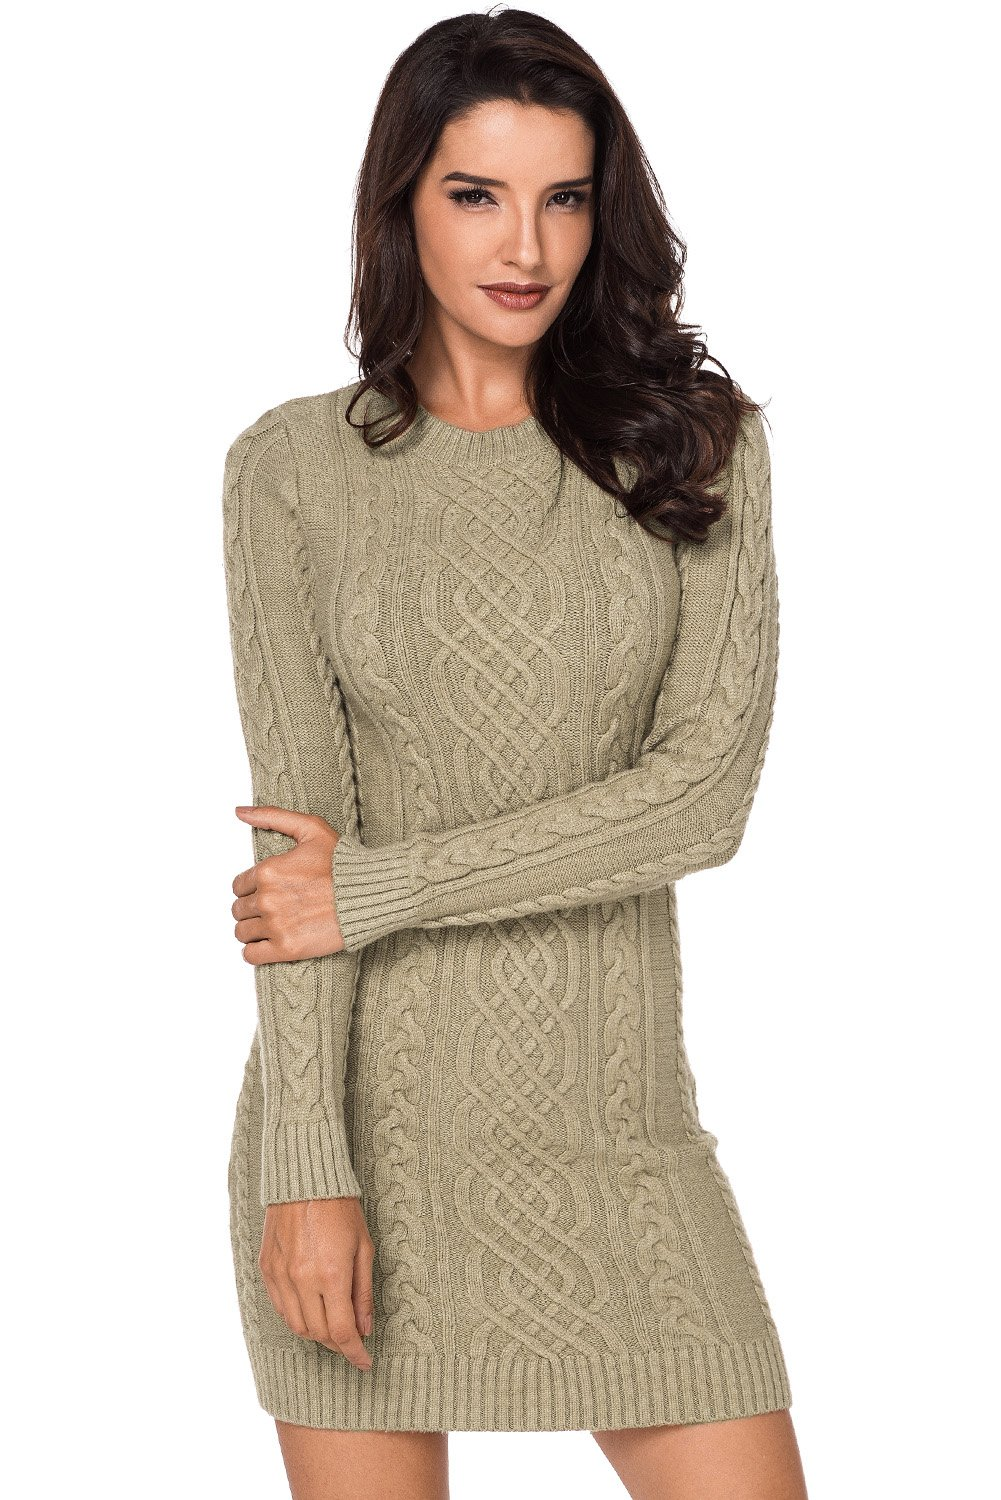 abdf595388c4 Robe pull Femme Hiver Manches Longues a Torsades Kaki Pas Cher  www.modebuy.com